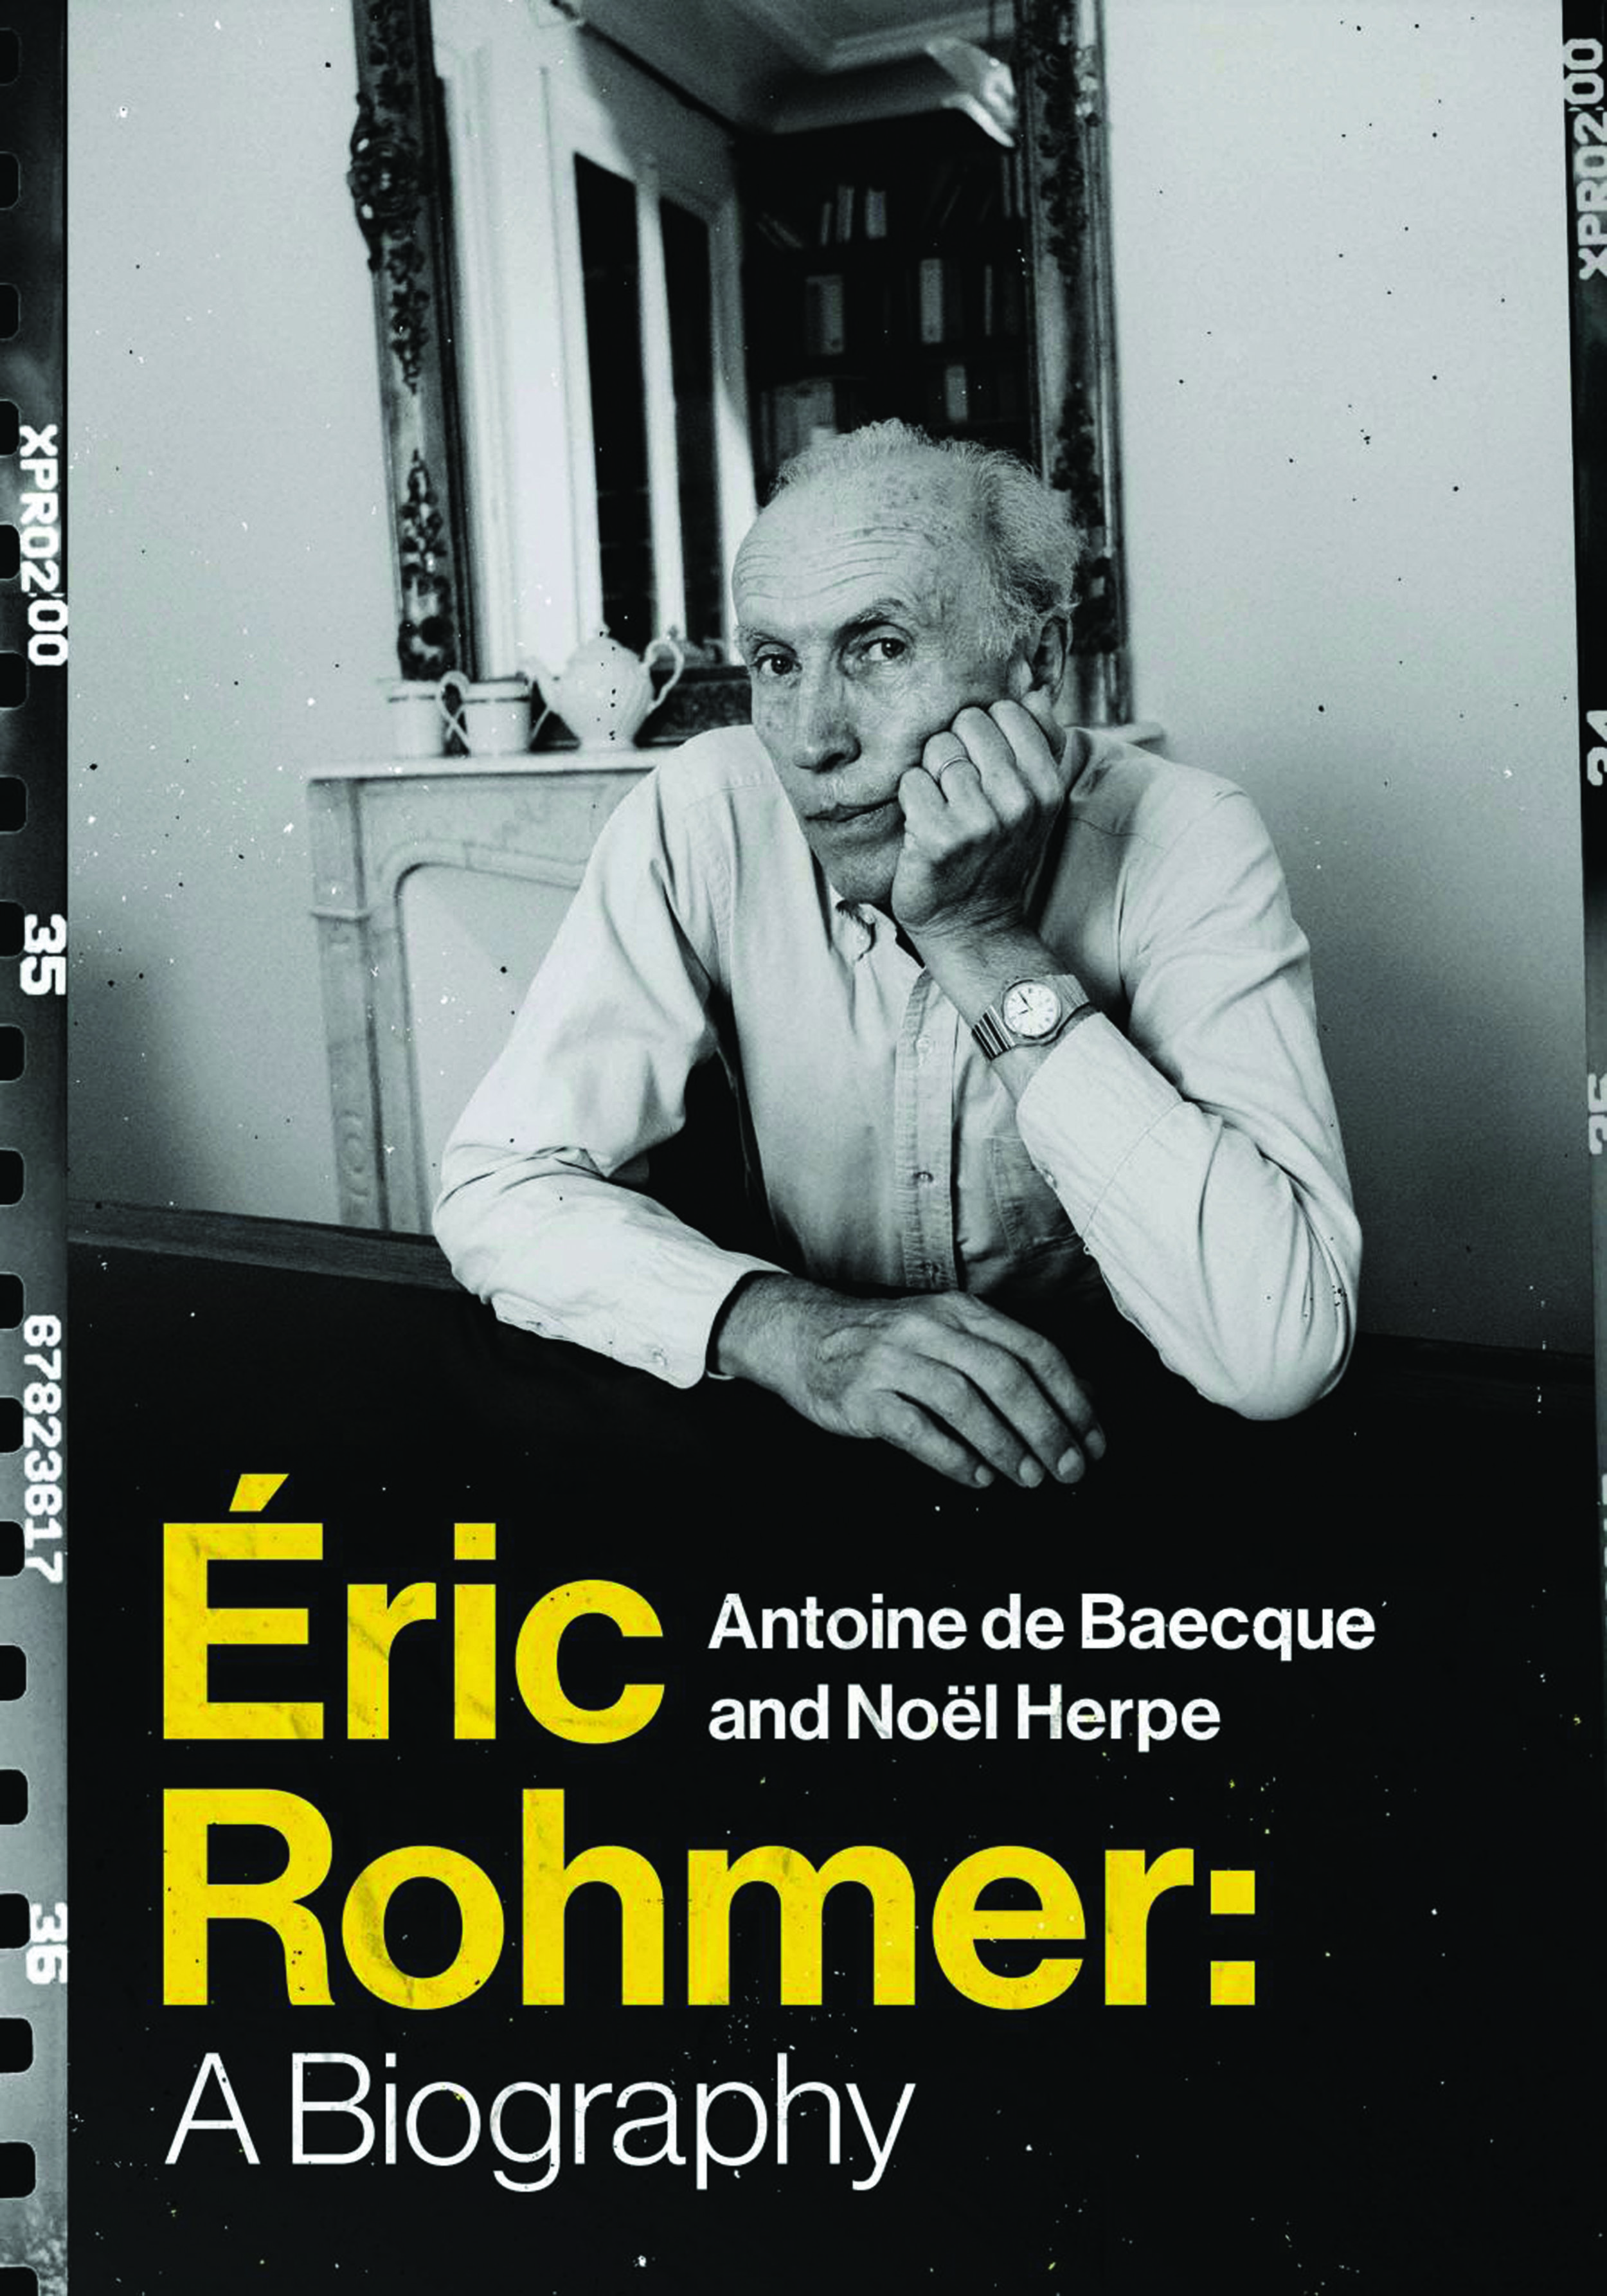 Eric Rohmer A Biography.jpg